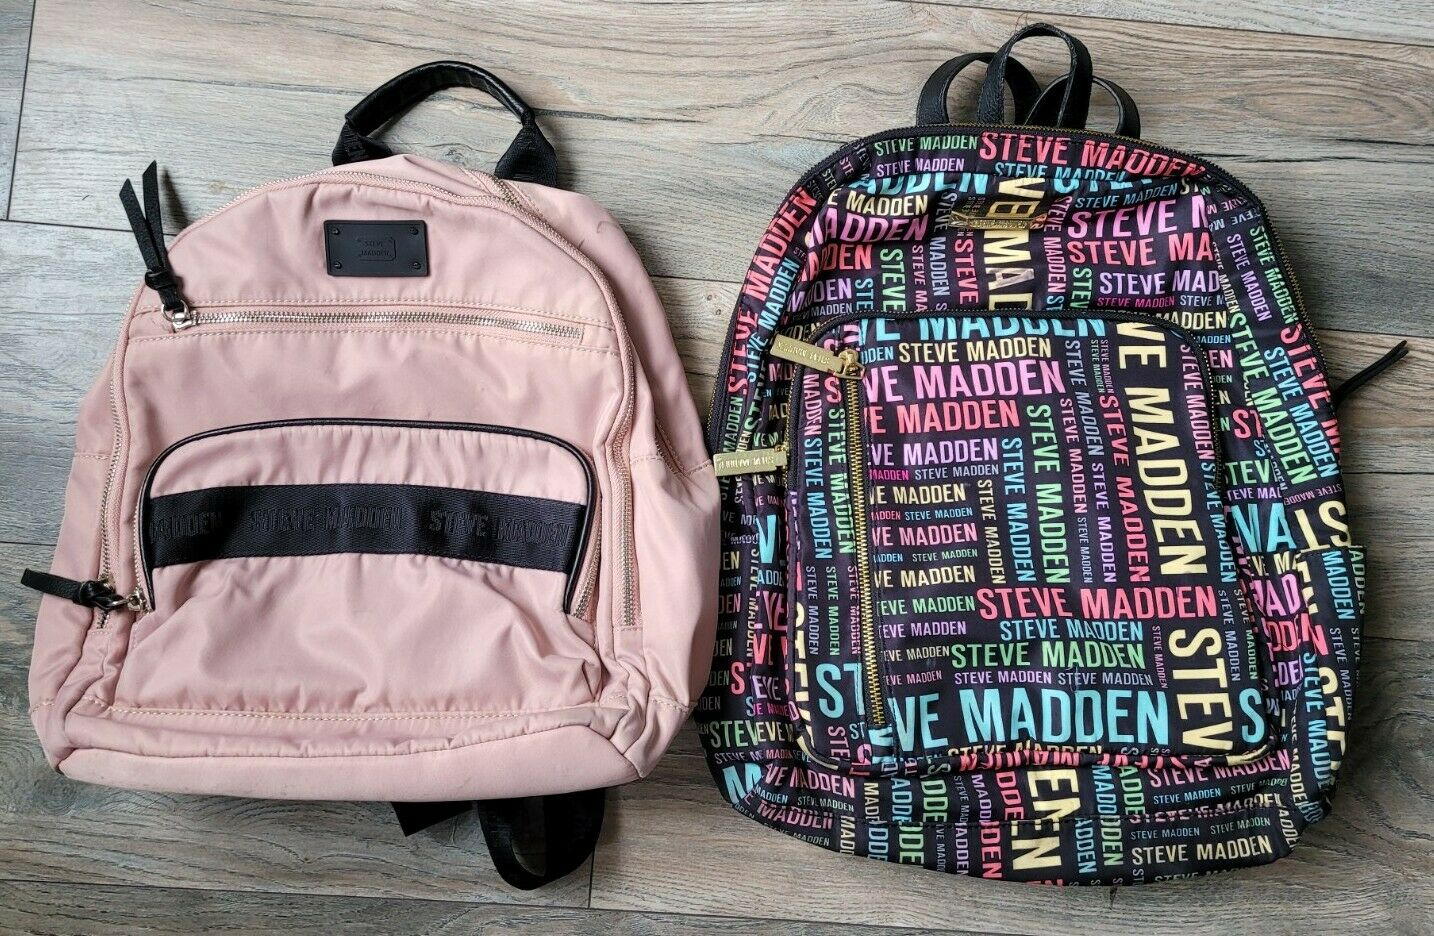 Steve Madden Womens Lot of 2 Pre-owned Backpacks Gold Accents SM & Med